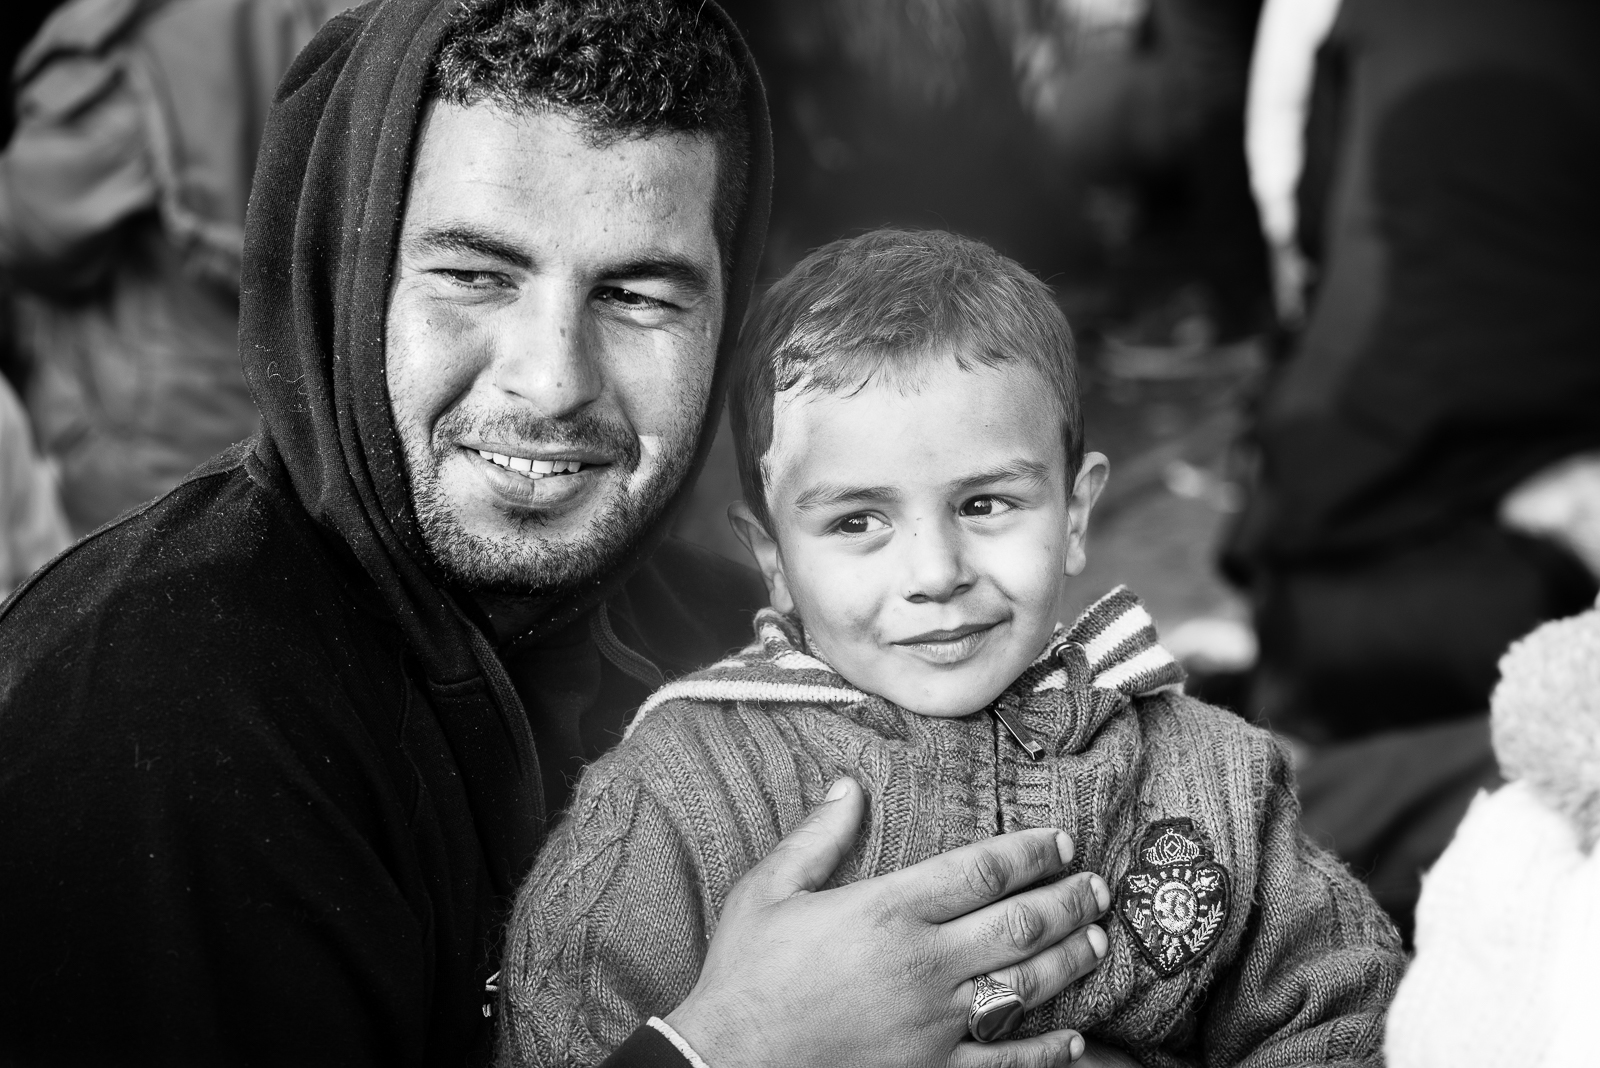 Father and son, syrian proud